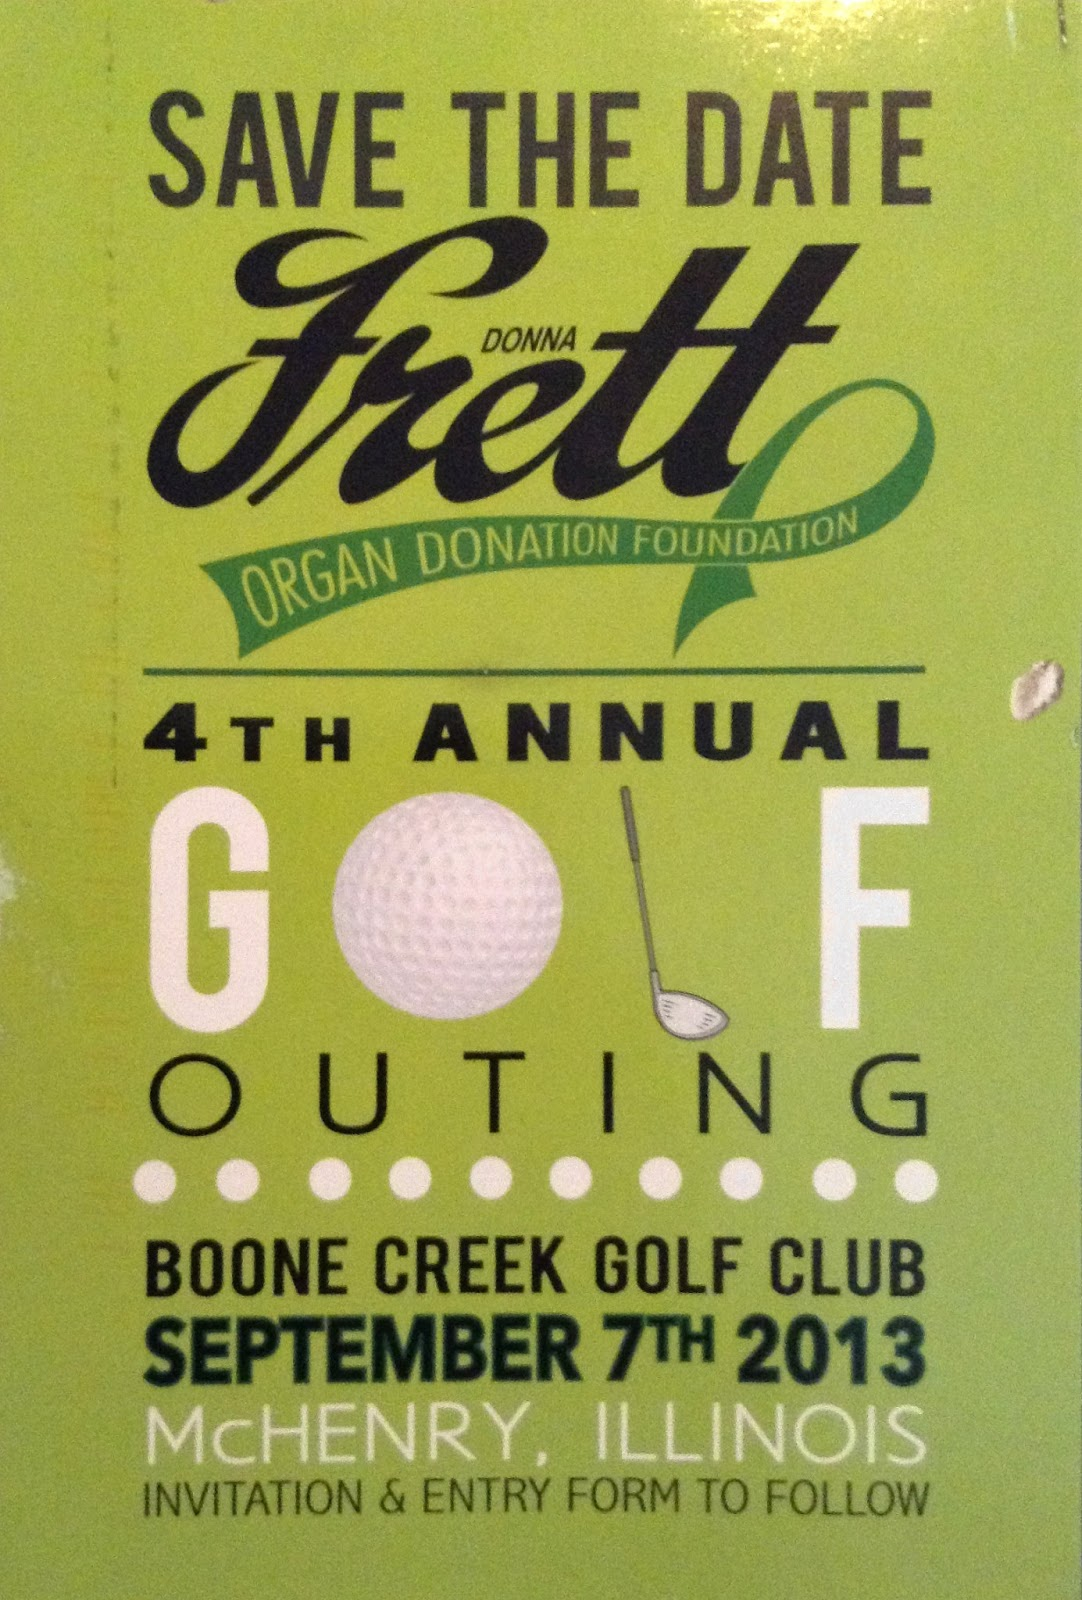 restoring hope transplant house  sept  7  donna frett foundation golf outing